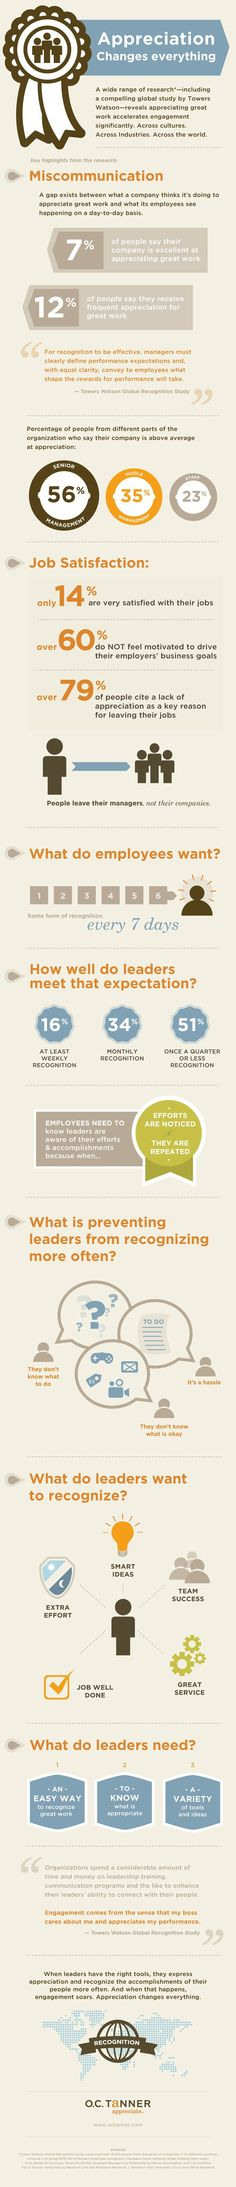 Appreciation Changes Everything: What do employees want? Could it be recognition?